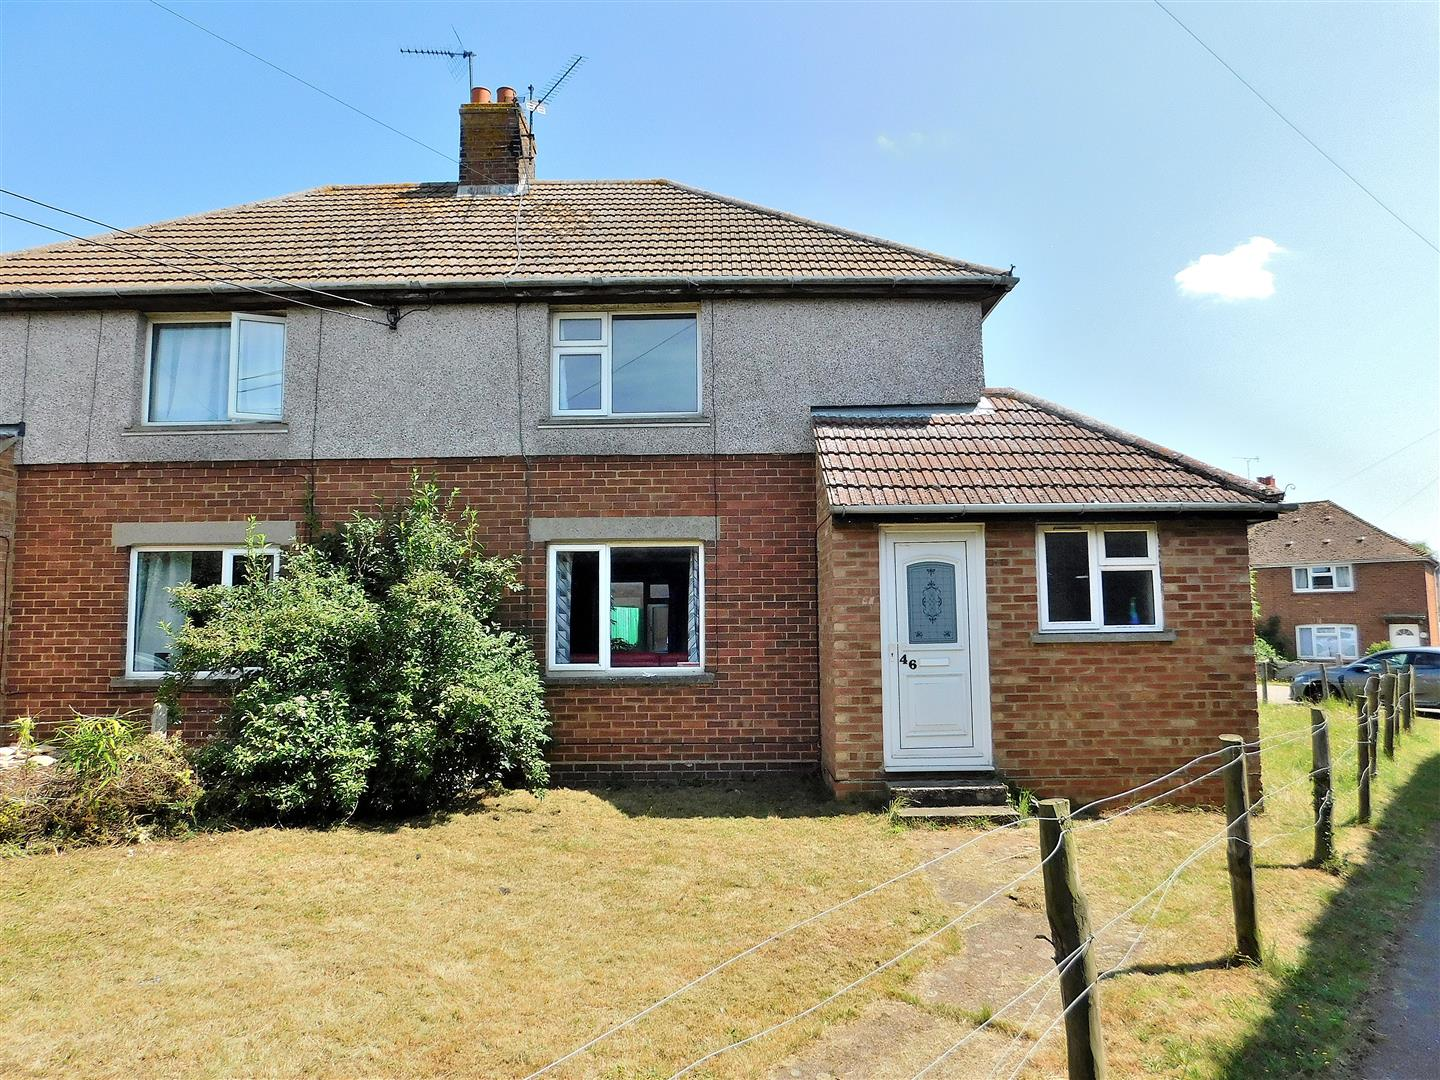 3 bed semi-detached house for sale in King's Lynn, PE31 7BS 0